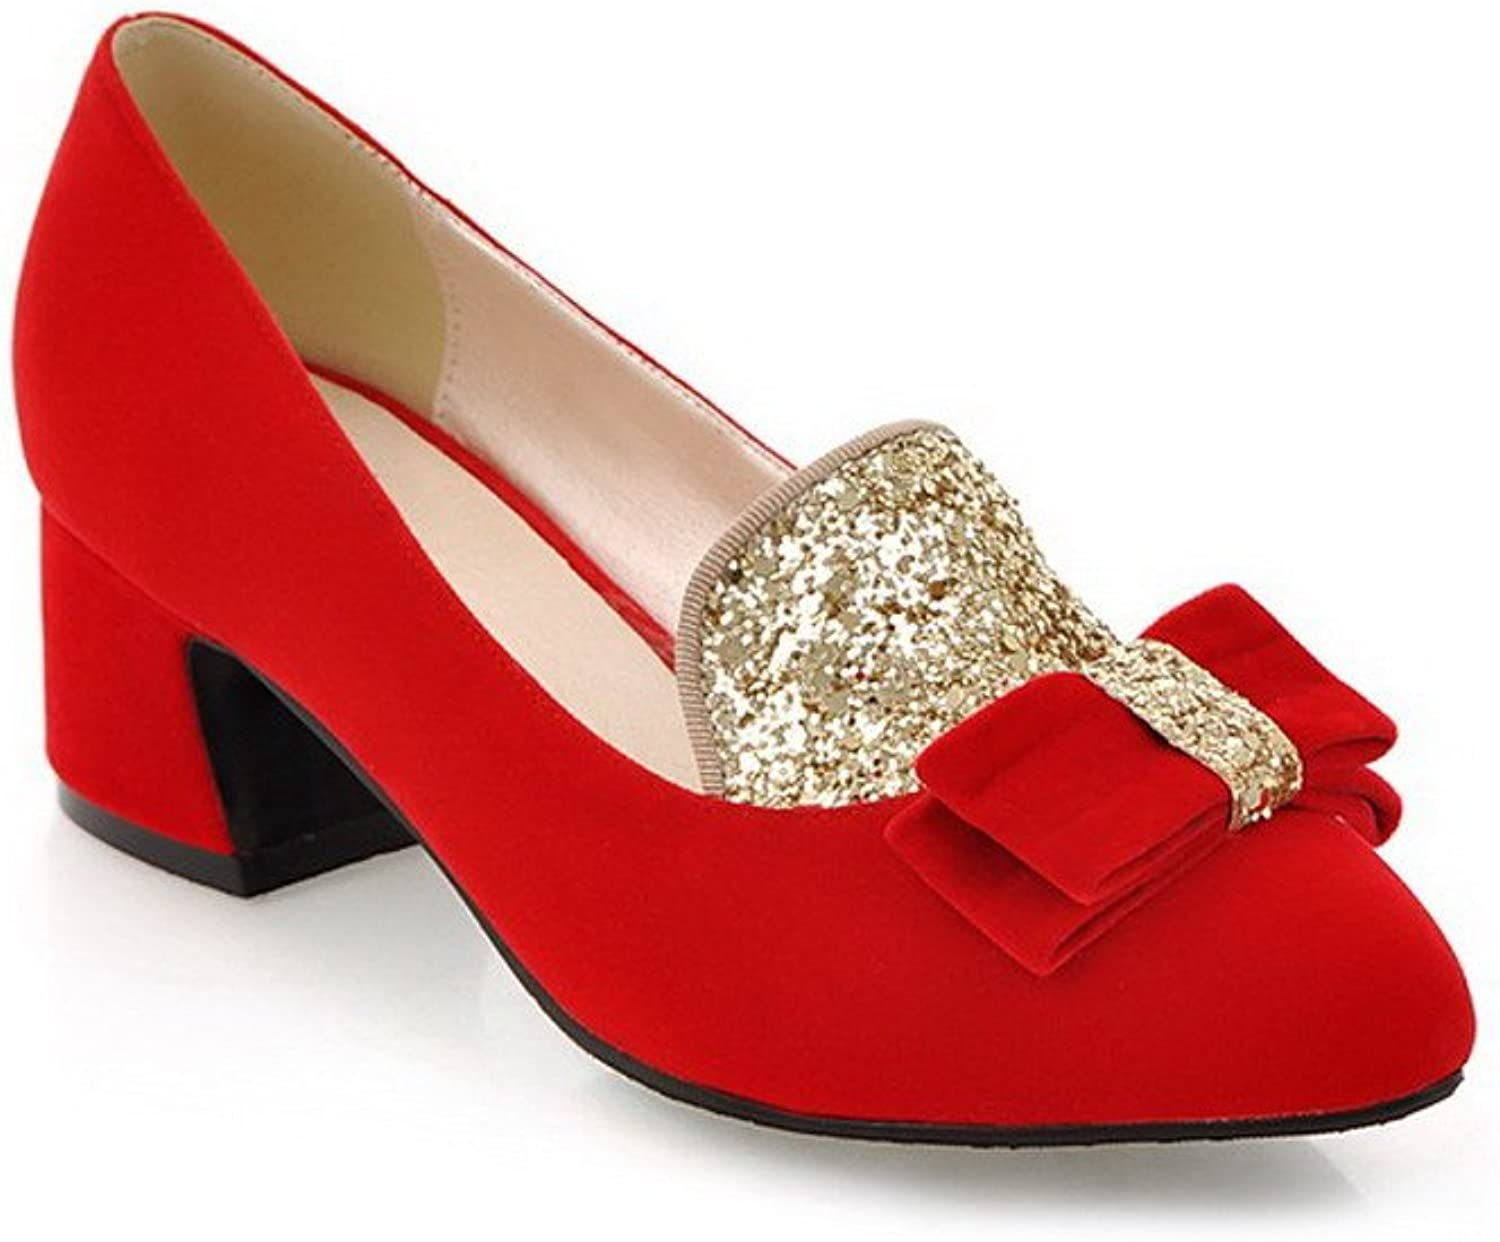 WeenFashion Women's Closed Pointed Toe Mid Heel Chunky Frosted PU Solid Pumps whith Sequins and Bowknot, Red, 7.5 B(M) US